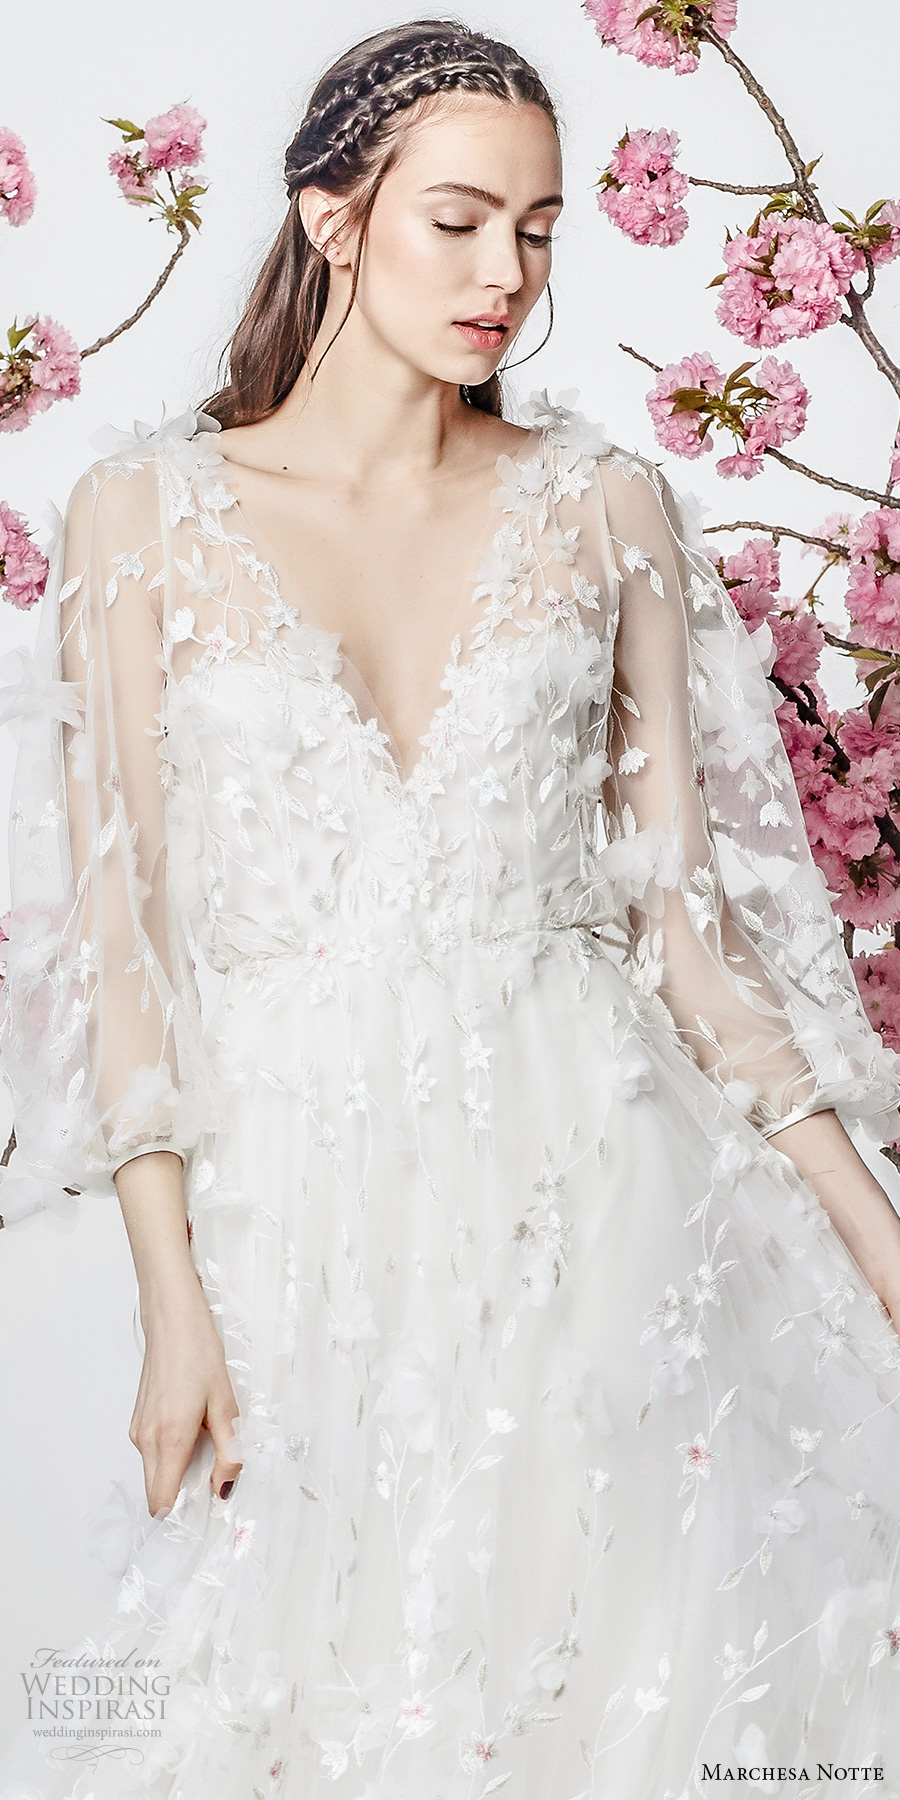 Marchesa Notte Spring 2018 Wedding Dresses Wedding Inspirasi